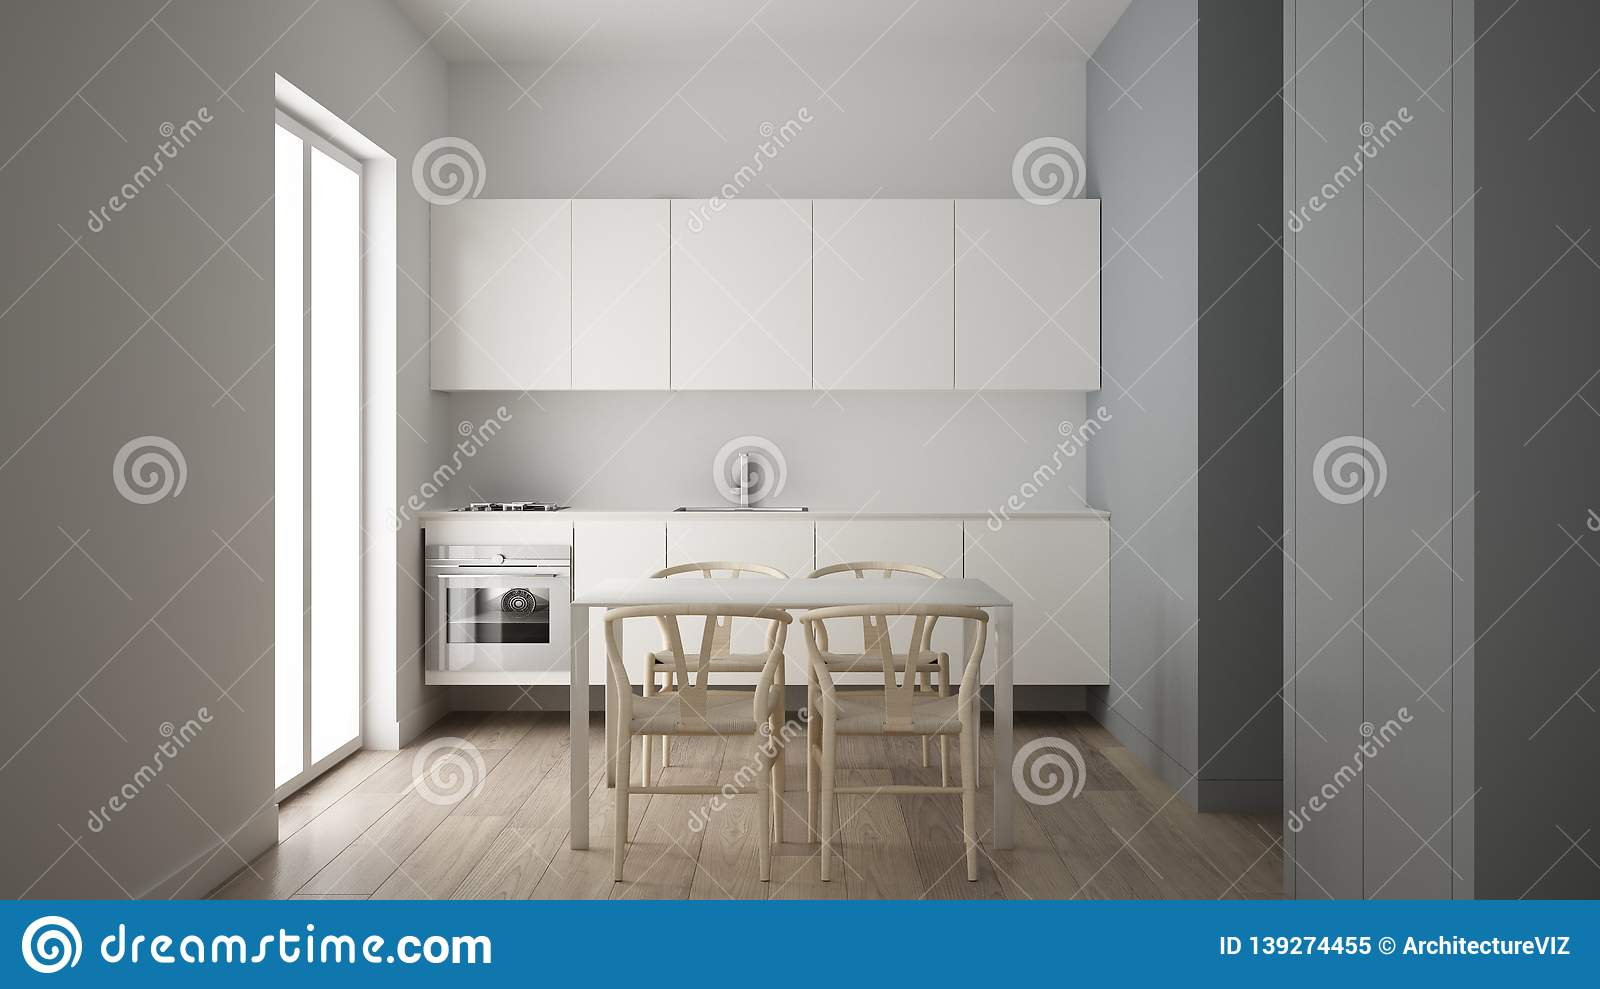 Minimalist Small Kitchen In One Bedroom Apartment, Dining Table ...